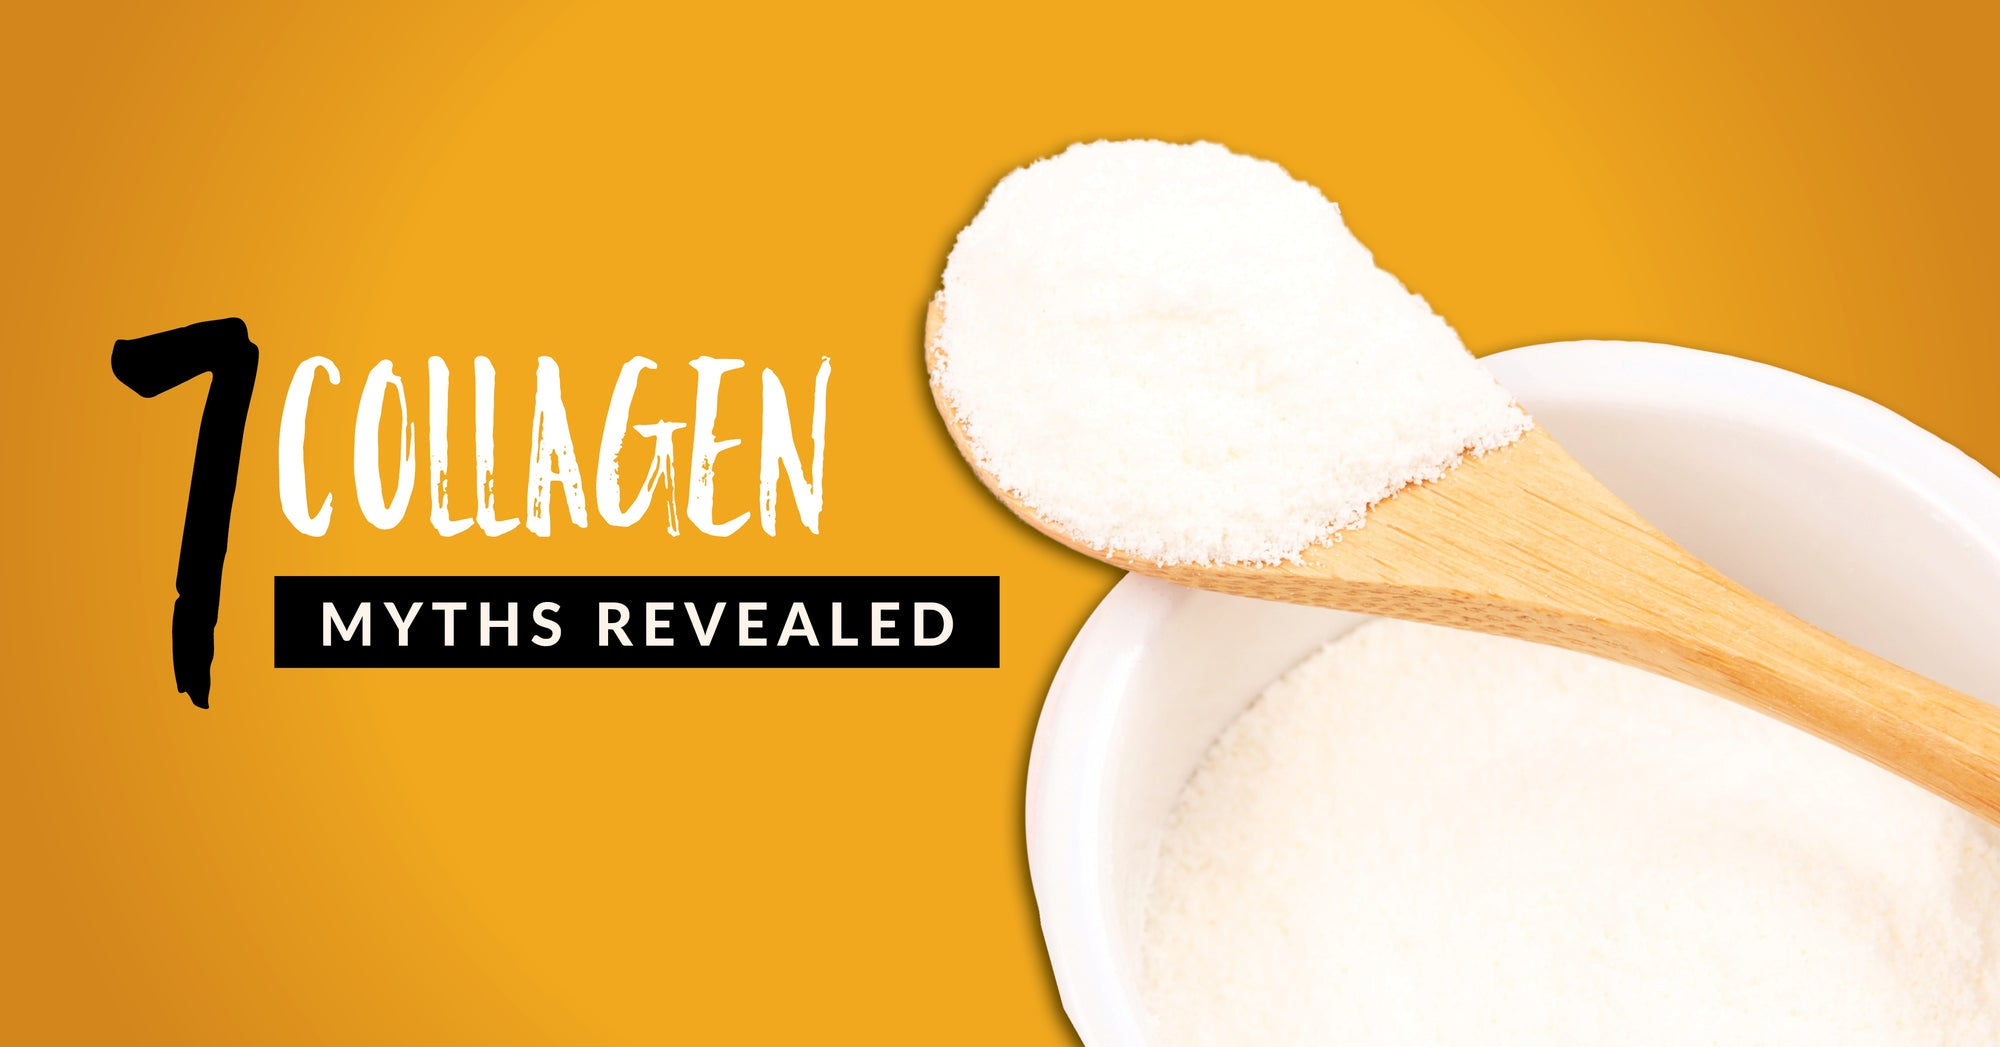 7 Collagen Myths Revealed